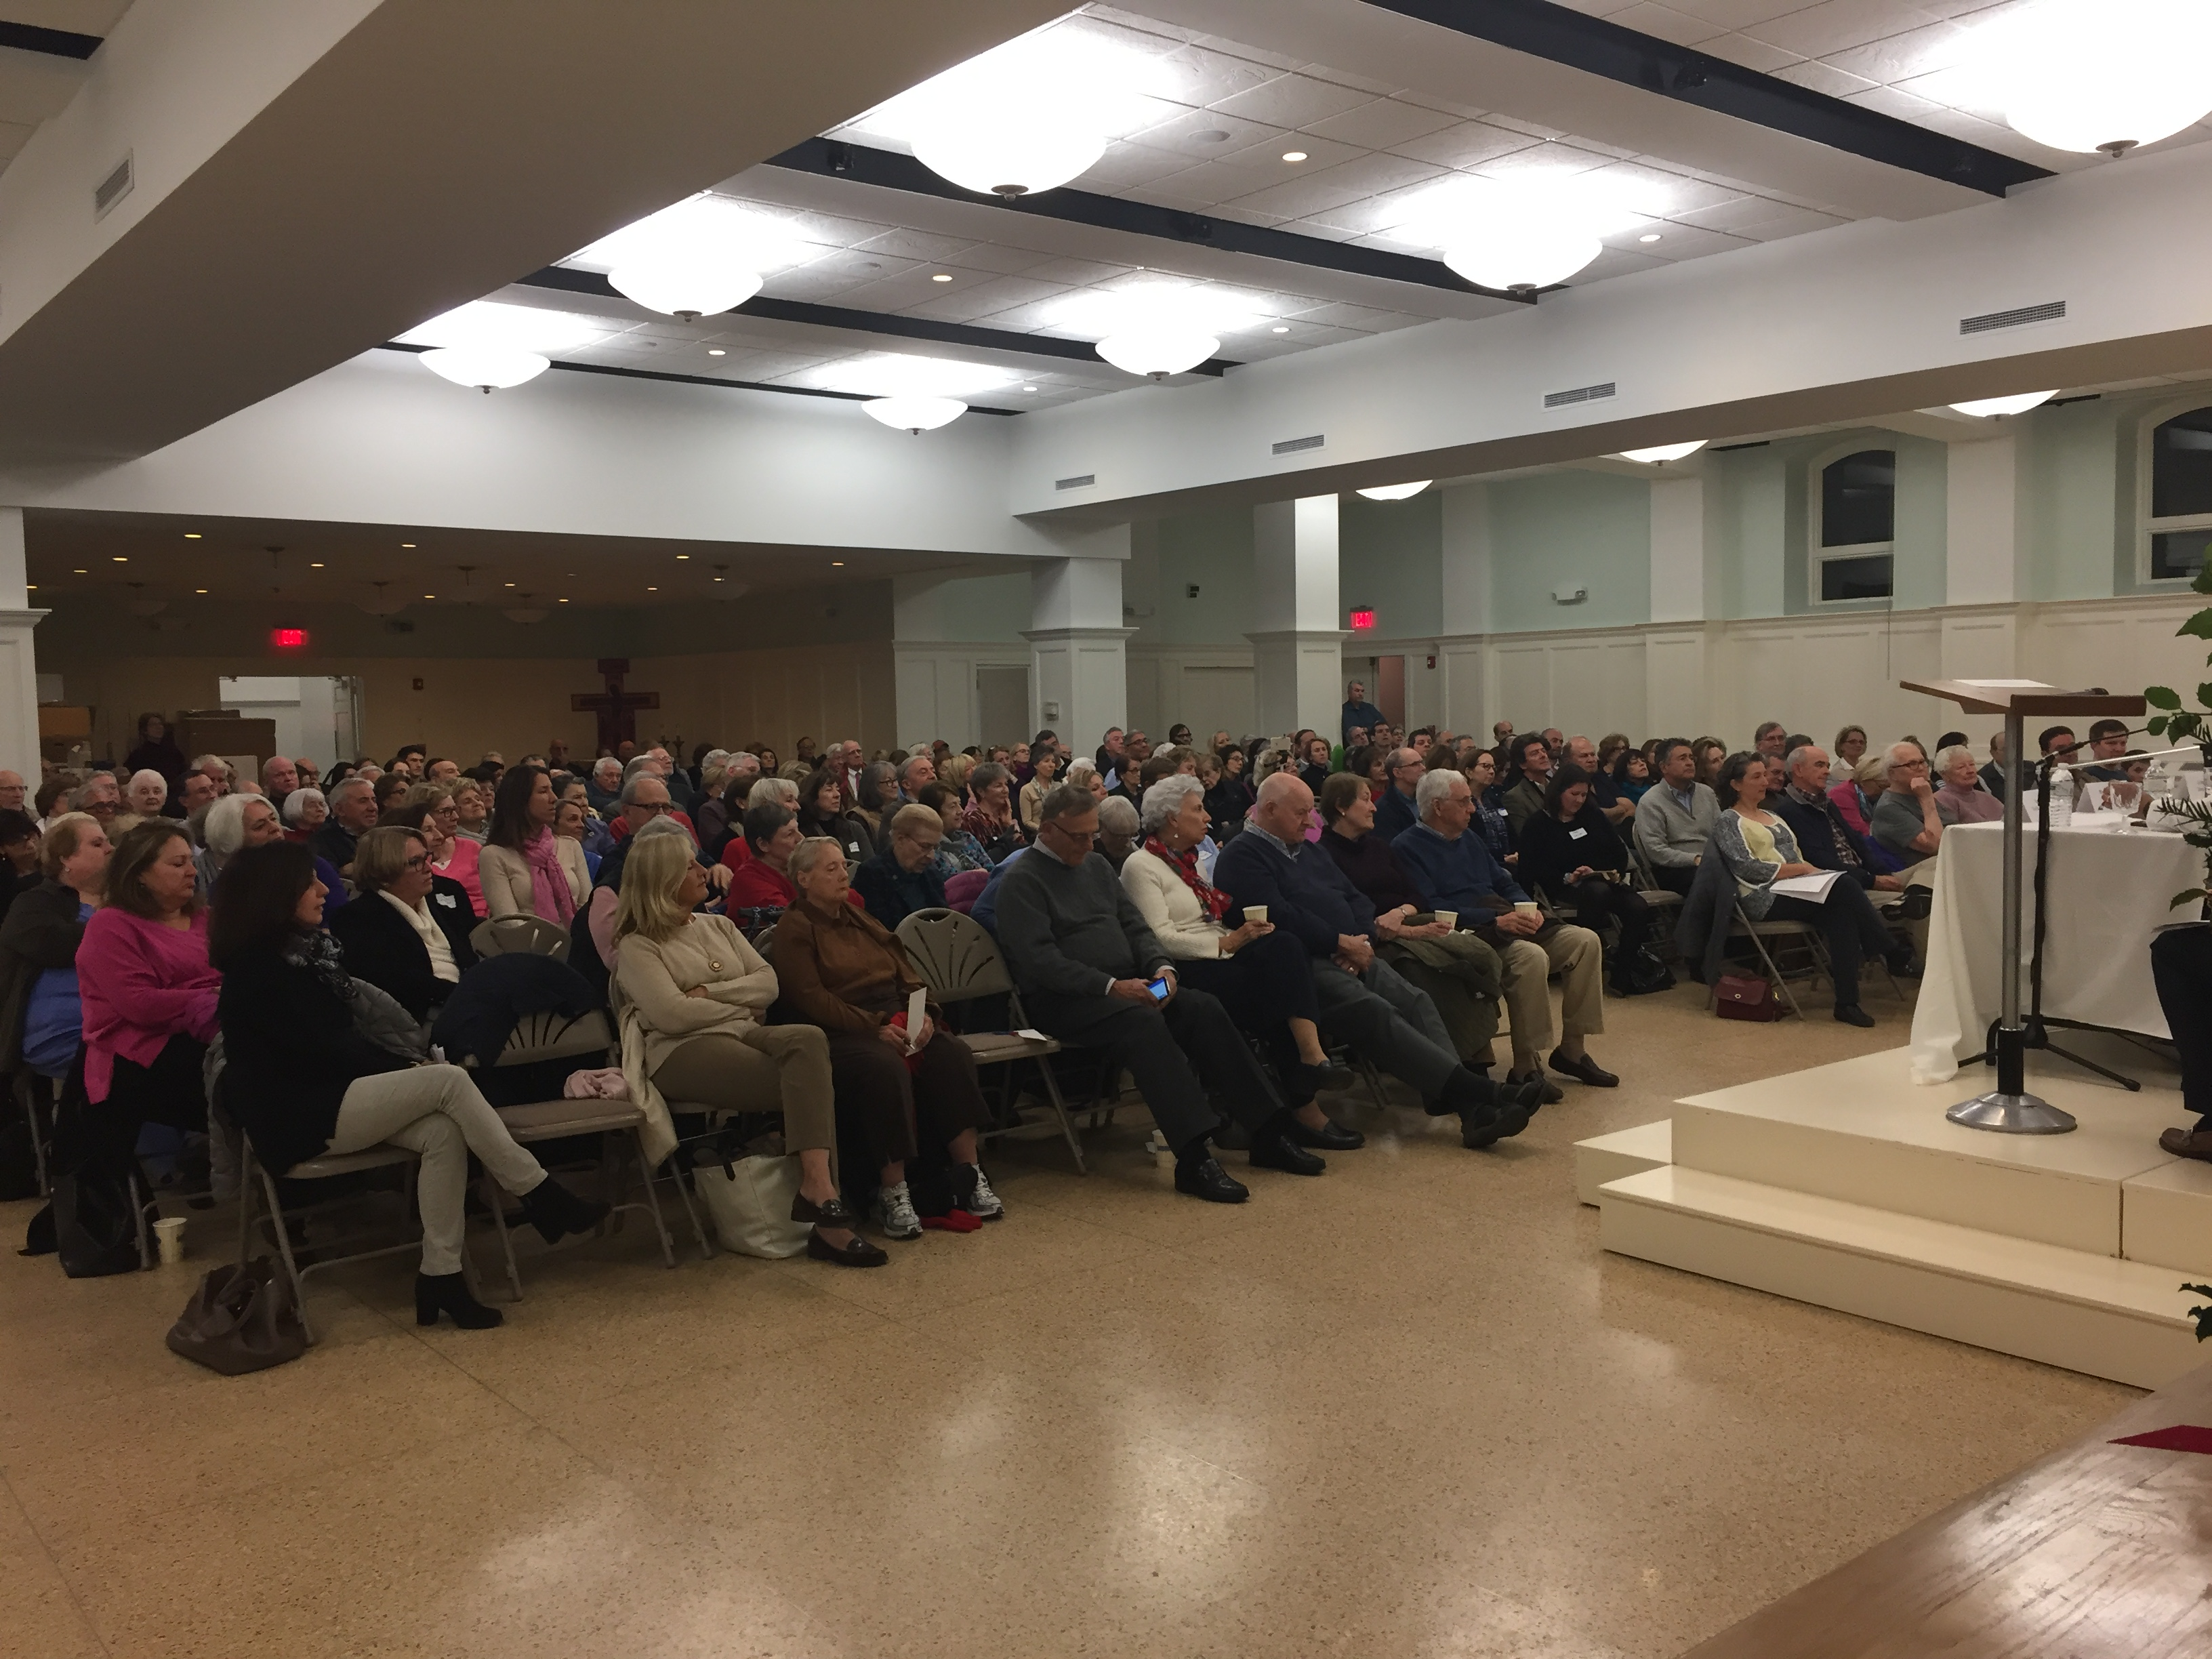 """Over 200 people attended an expert panel discussion titled, """"Election Aftermath: Faith & the Common Good,"""" co-sponsored by the Religion News Service and St. Catherine of Siena Parish, Riverside, Conn."""